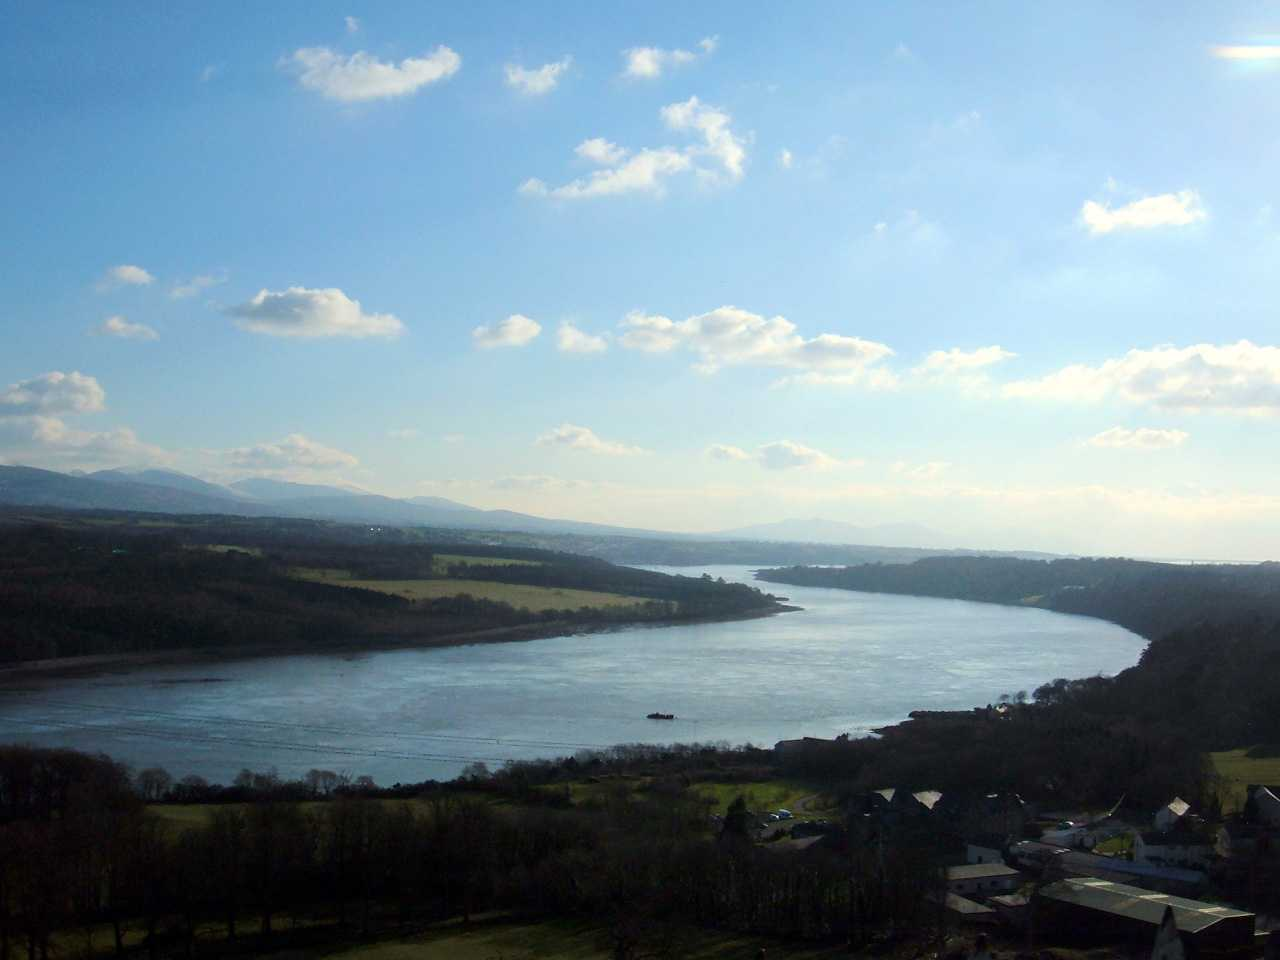 Menai Bridge, Menai Straits Winding